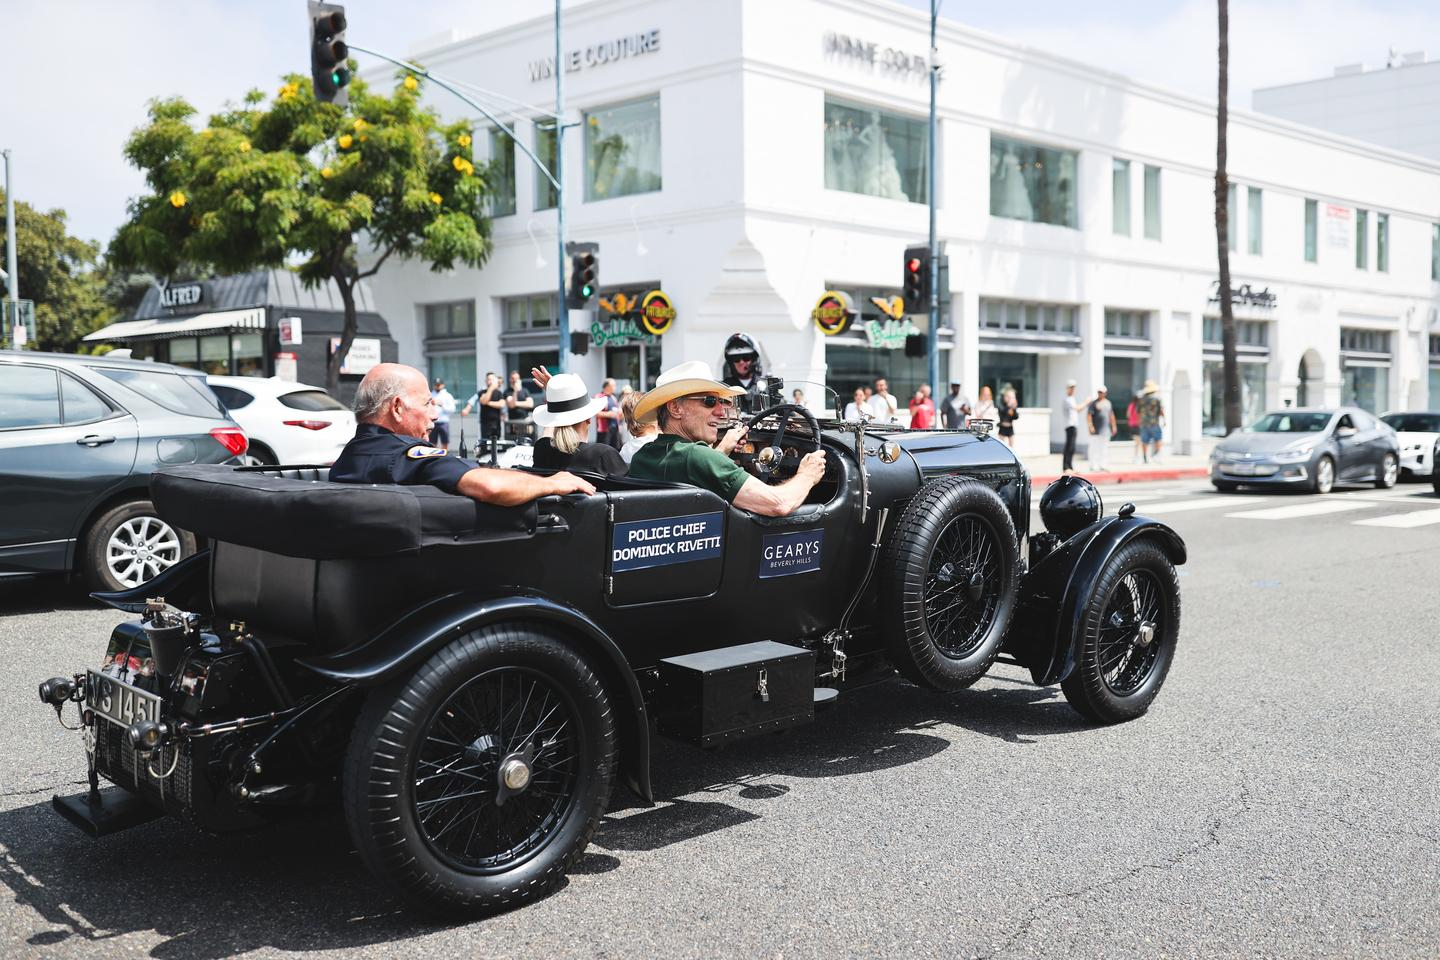 Event founder Bruce Meyer chauffeurs Beverly Hills Police Chief Dominick Rivetti in the 2021 Beverly Hills Tour d'Elegance in his 1929 Bentley 4½ Litre Tourer. Rivetti has 51 years of service in law enforcement behind him.